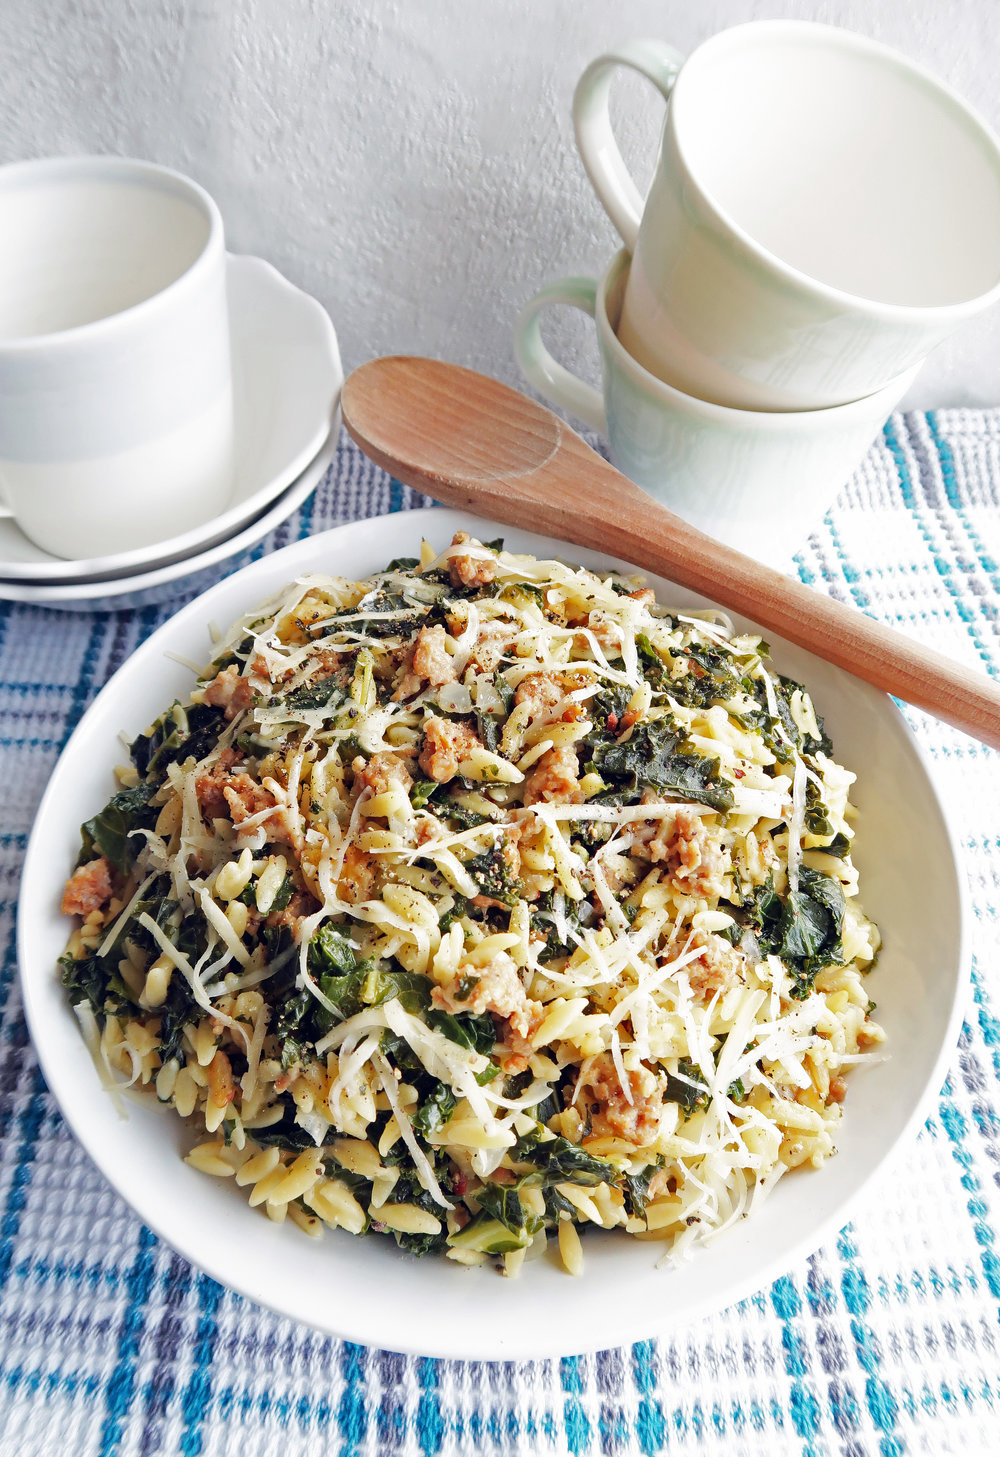 Orzo pasta with Italian sausage and kale with shredded cheese on top in a large pasta bowl.